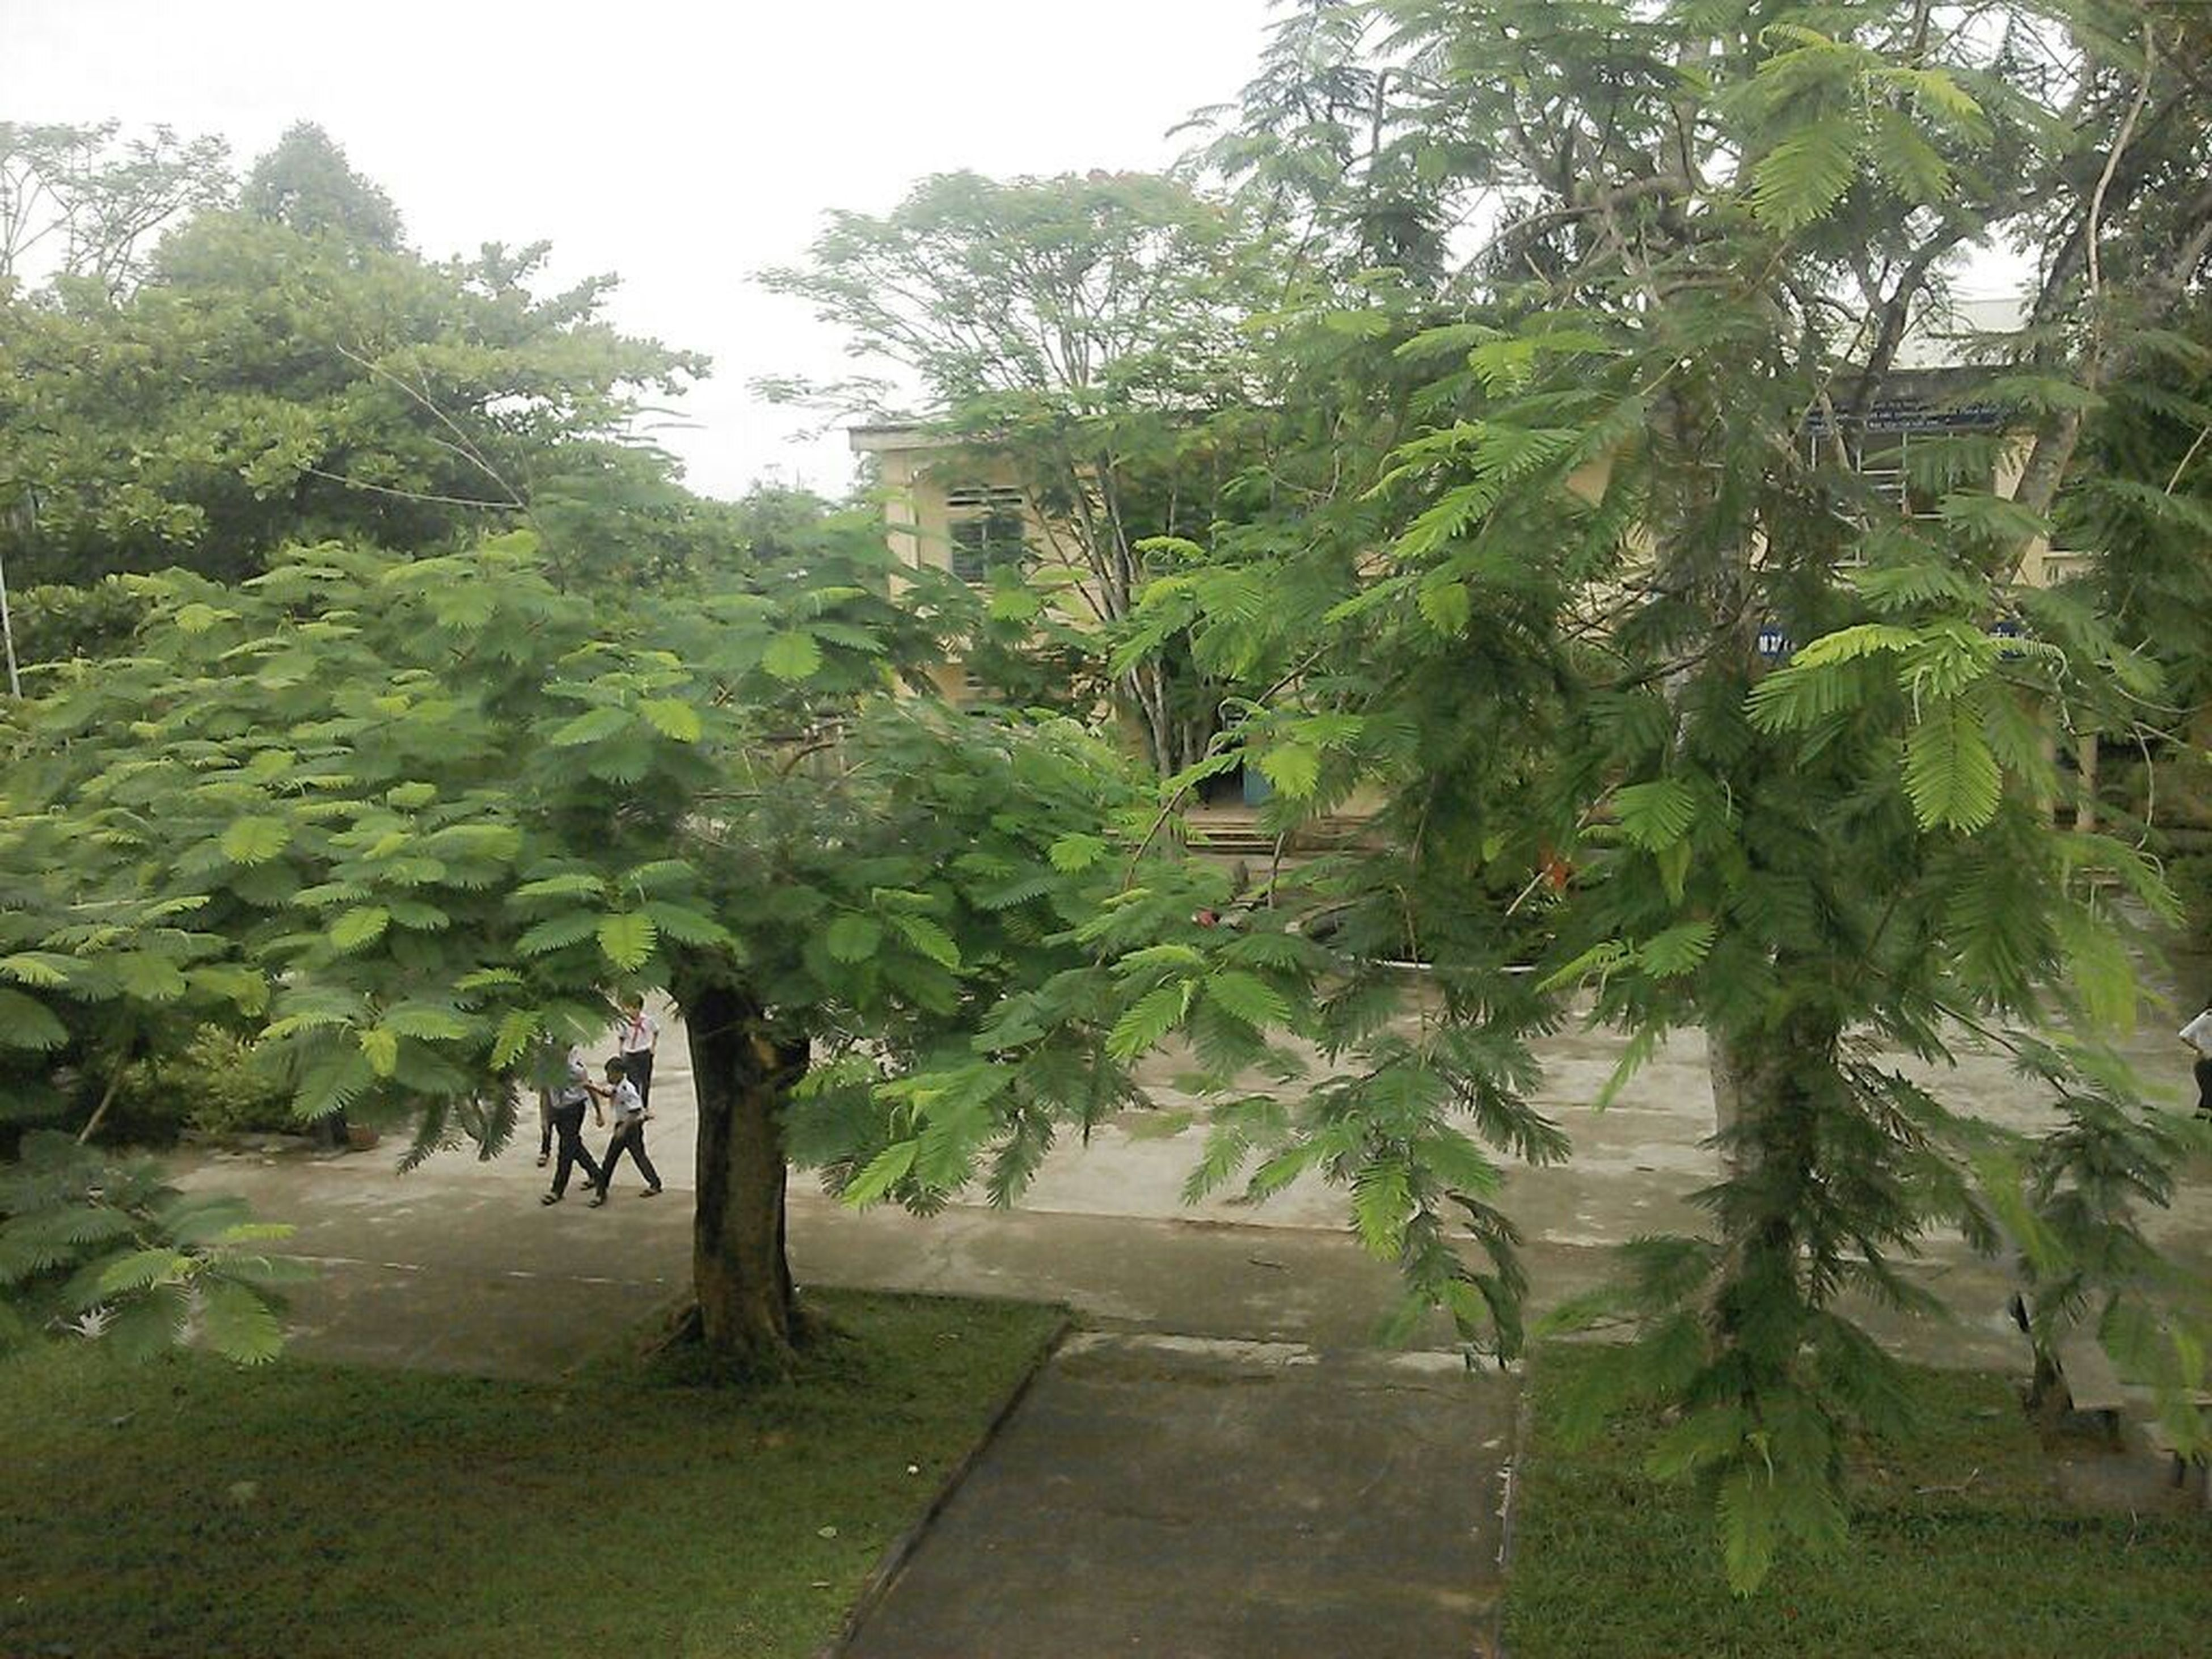 green color, growth, tree, plant, nature, tranquility, beauty in nature, park - man made space, leaf, tranquil scene, green, lush foliage, footpath, day, outdoors, formal garden, growing, grass, sunlight, freshness